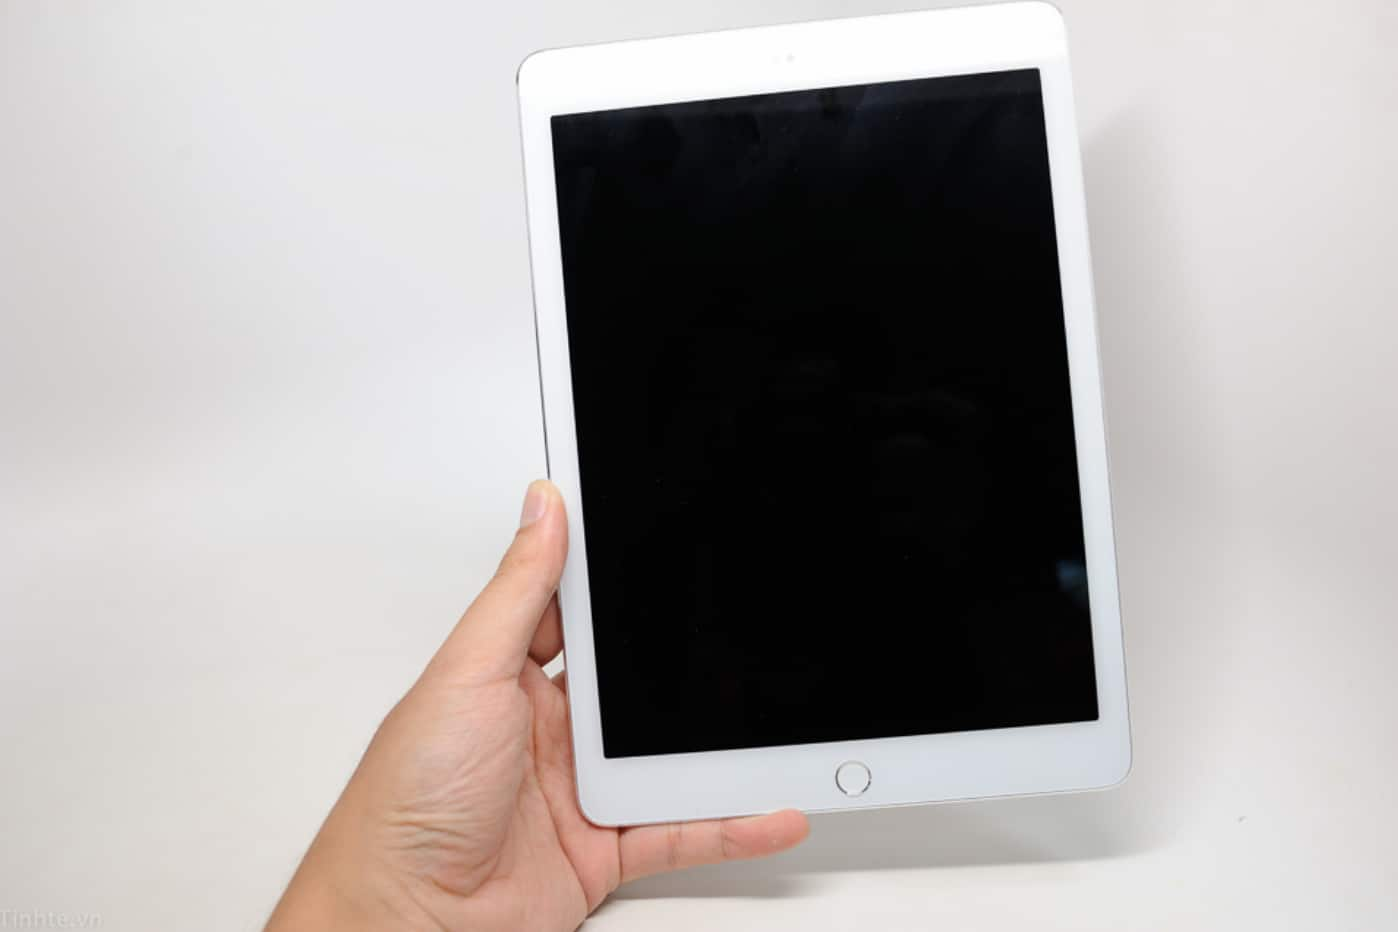 New Details About Ipad Air 2 More To Come October 16th